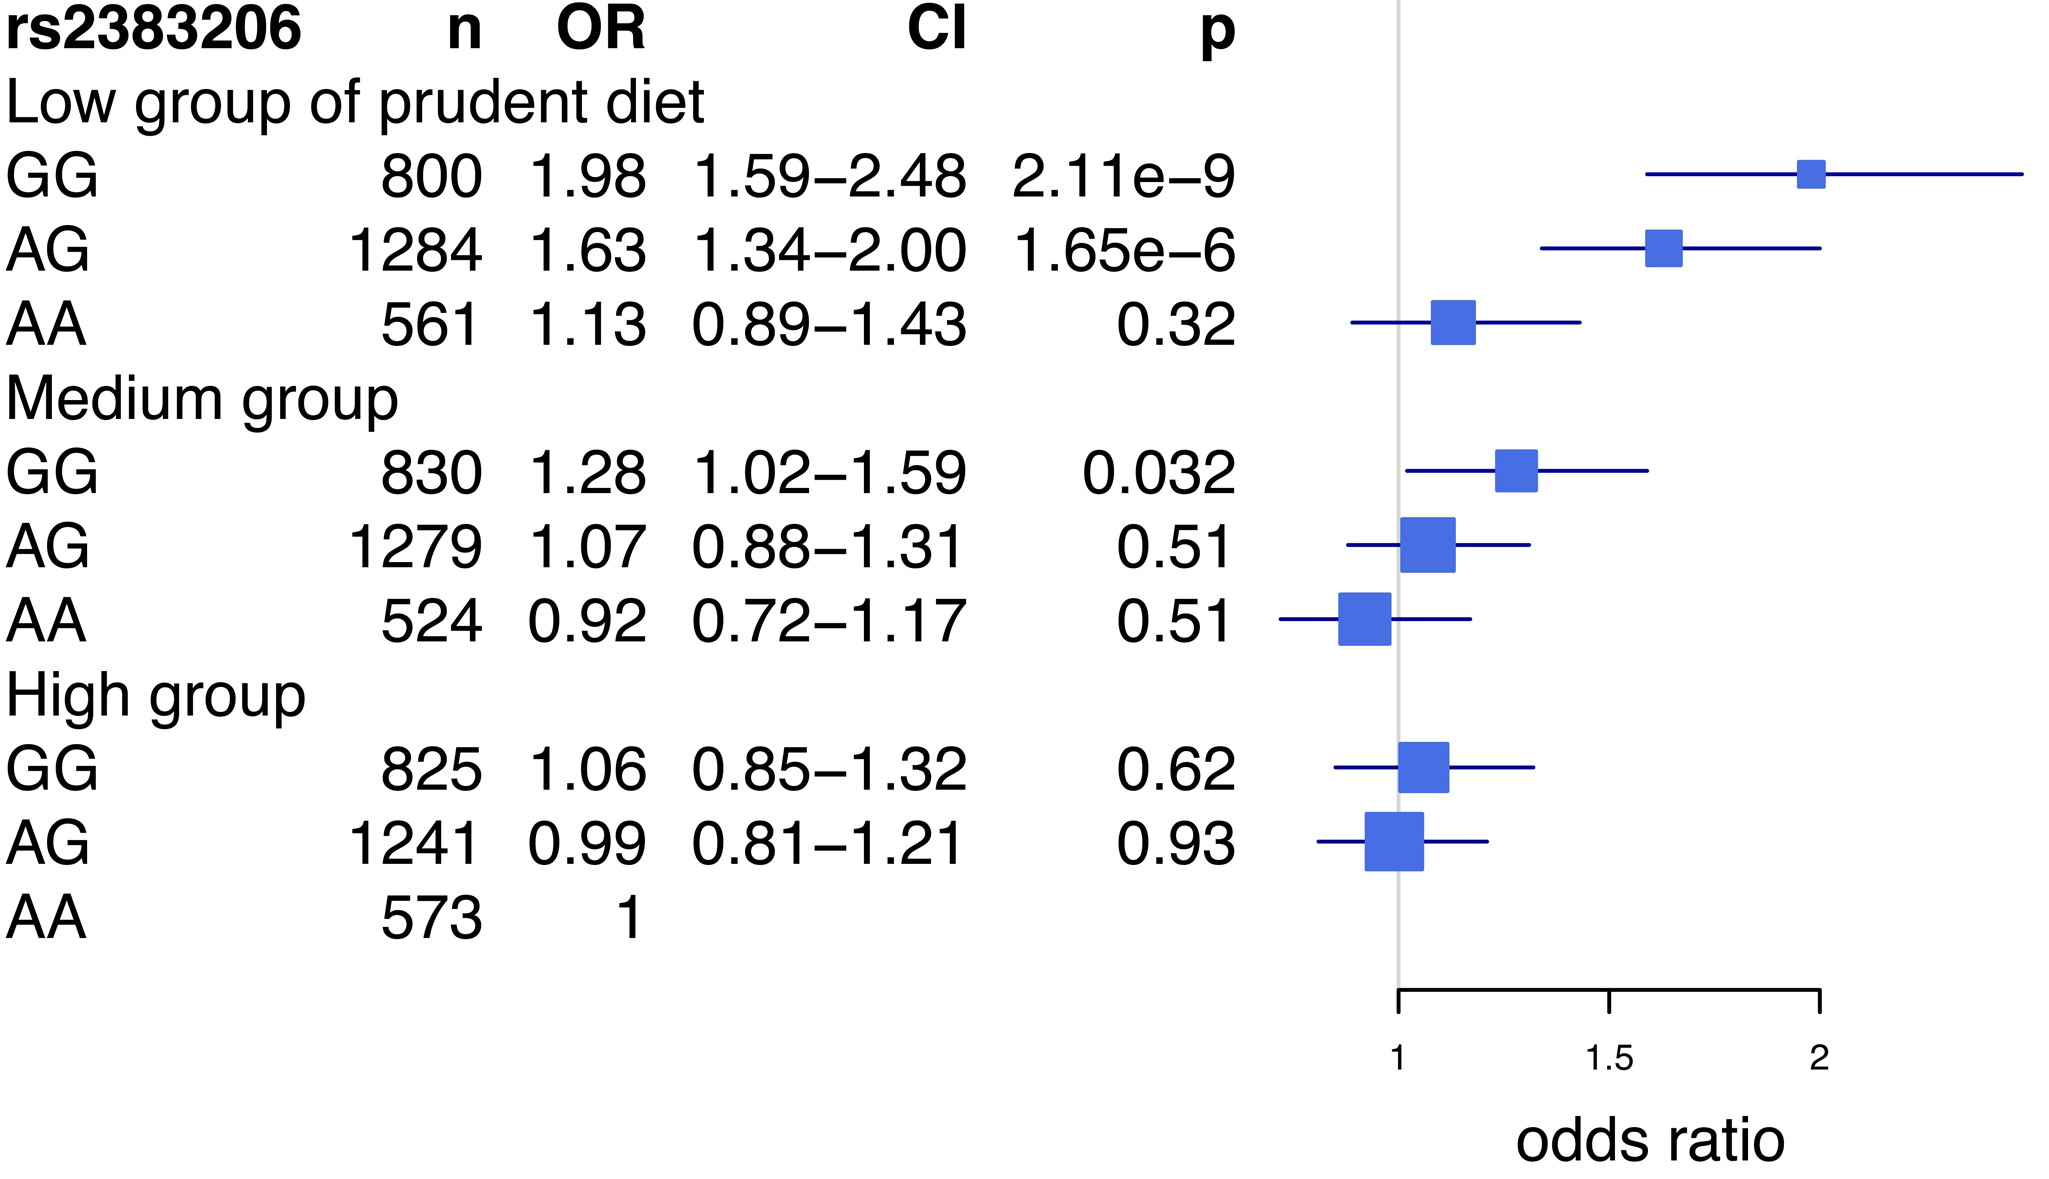 Risk of acute myocardial infarction associated with prudent diet and the Chromosome 9p21 variant rs2383206 in the INTERHEART study.